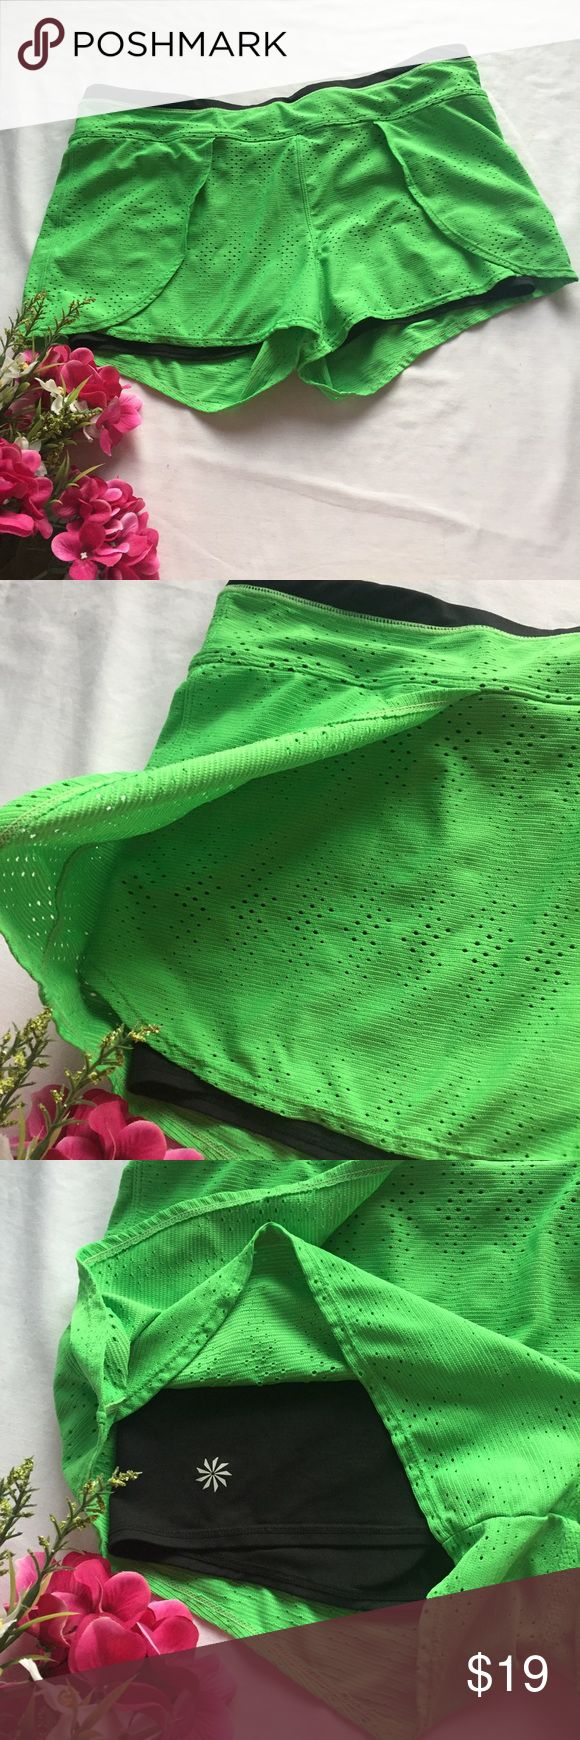 Athleta Lime Green Lined Perforated Sport Shorts Lime green shorts from Athleta. Spandex shorts on the interior with plenty of stretch for a close fit. Lime green looser shell that's Perforated for breathability and has a faux wrap look on each side. Zipper pocket on back, key pocket on interior as well as a draw string. Excellent condition with no flaws. Waist measurement is included in the last picture. (Location I) {no trades - no modeling} Athleta Shorts